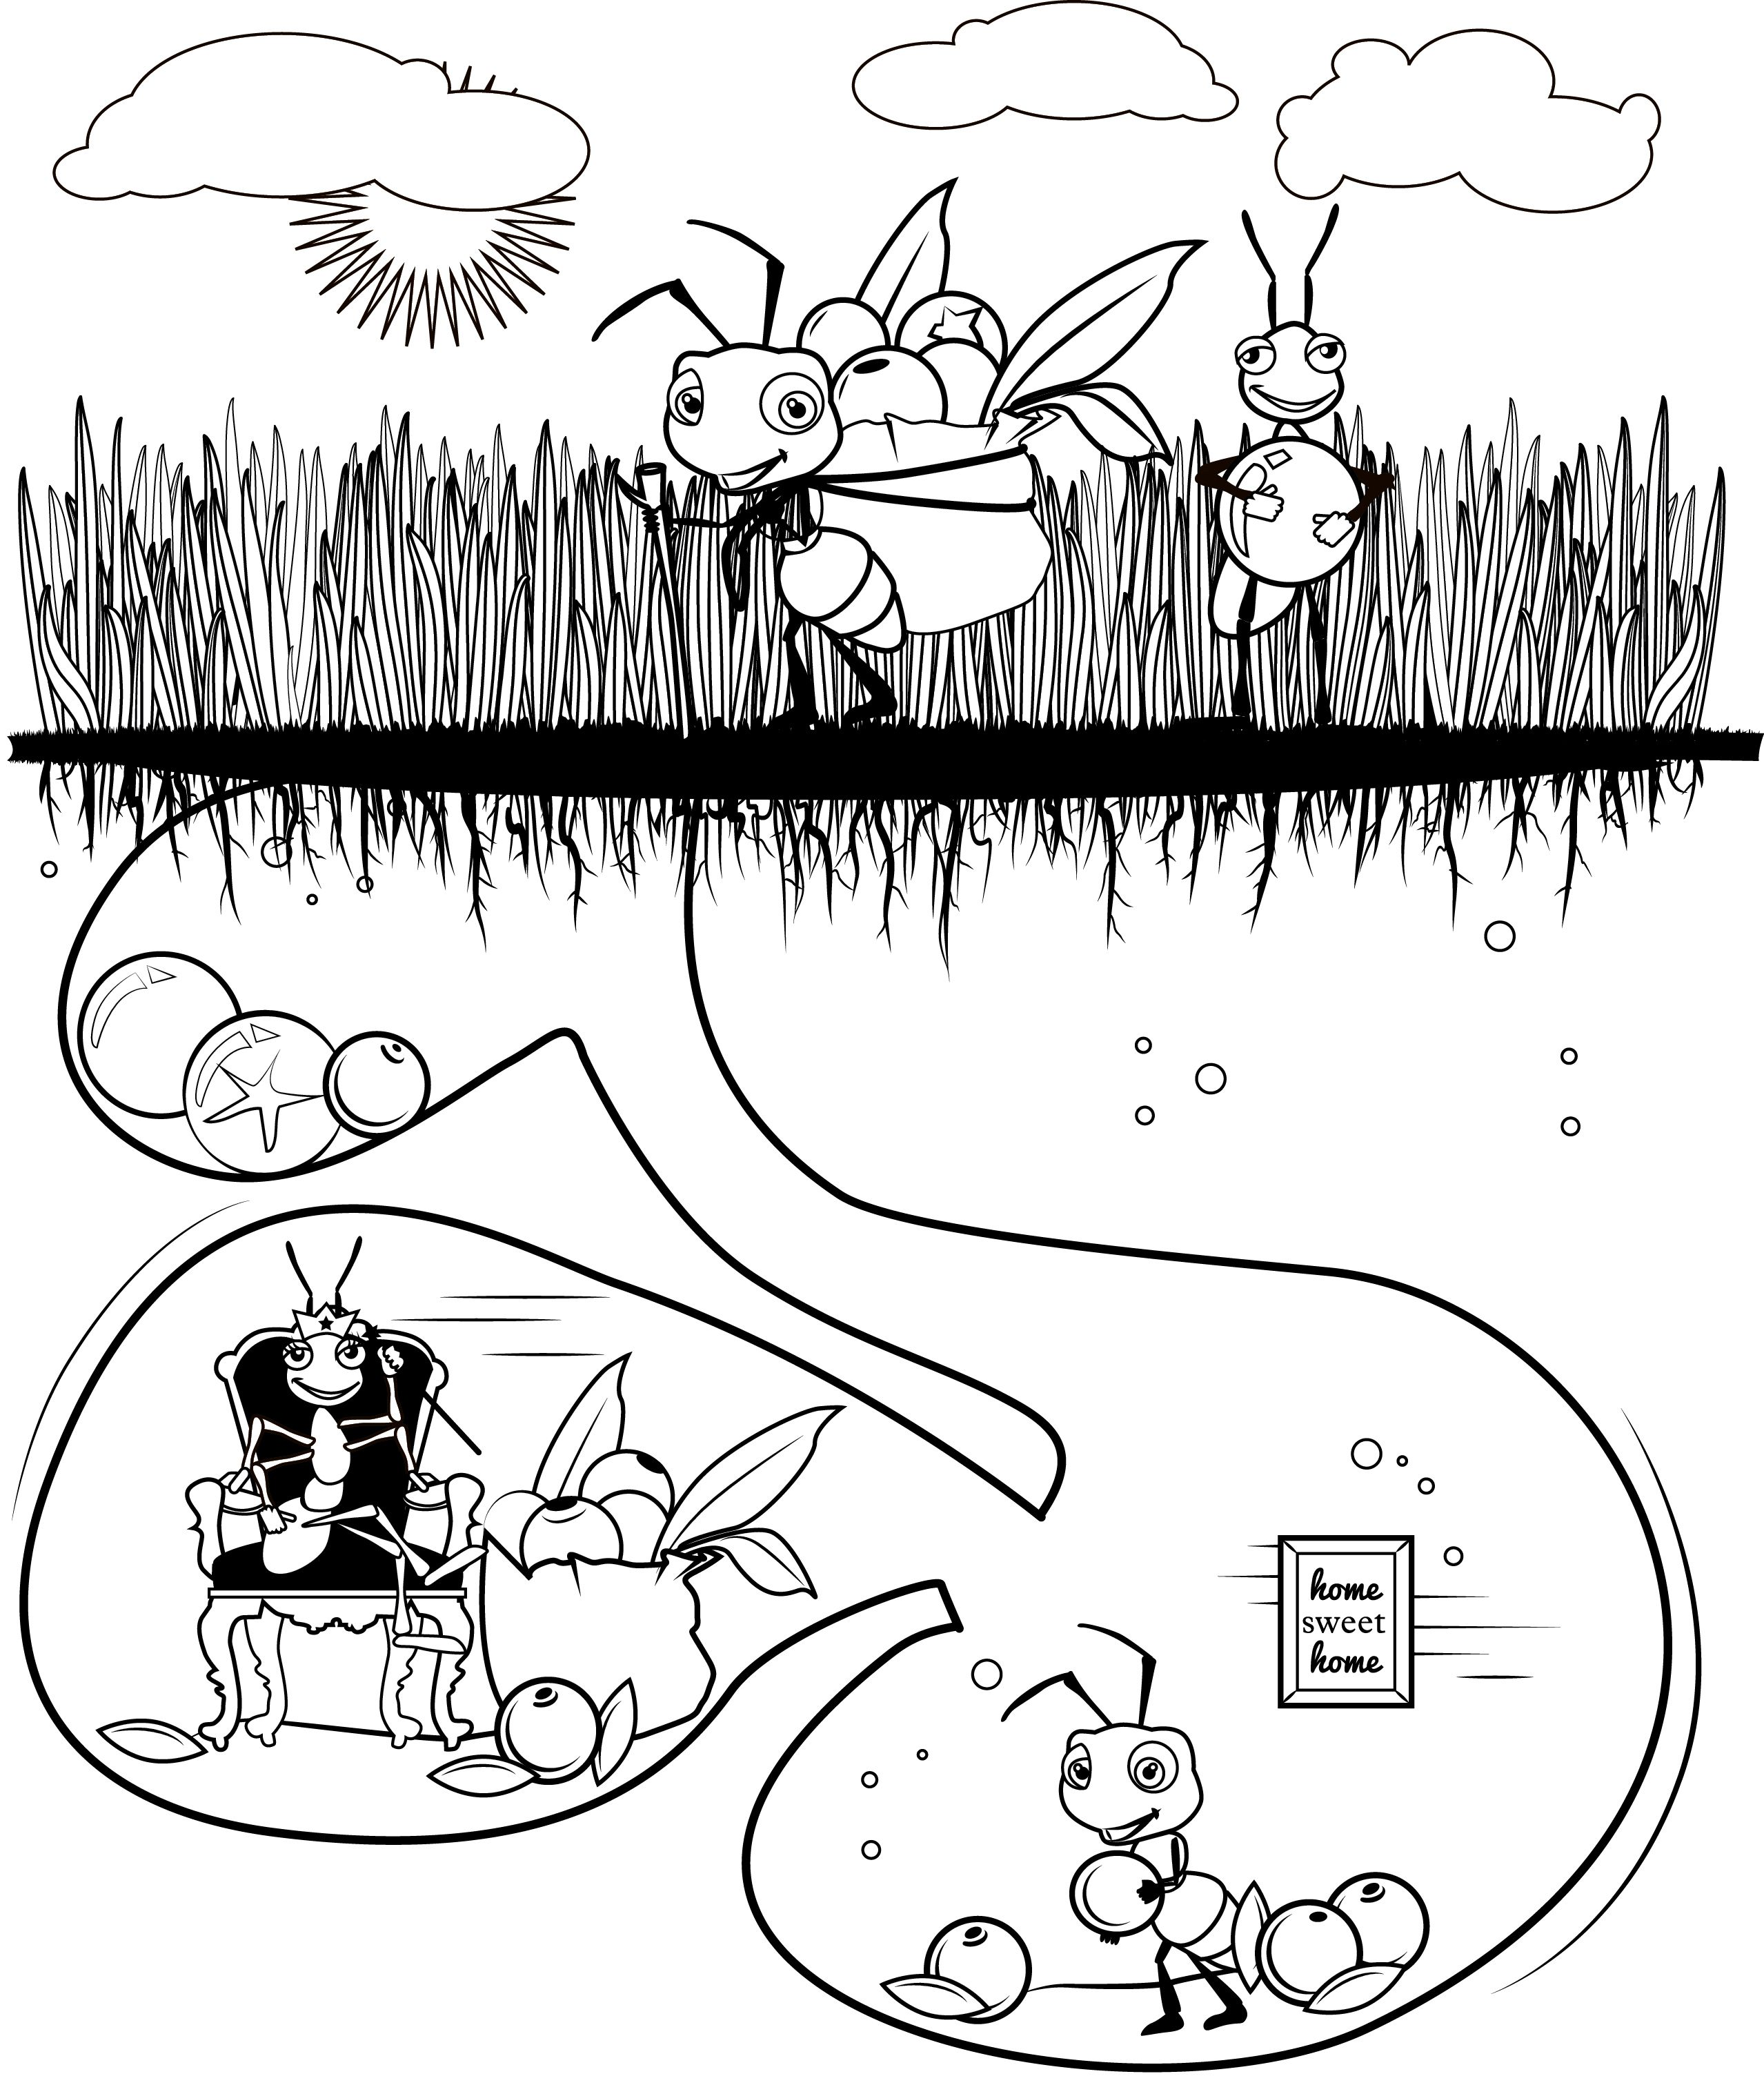 antz coloring pages dreamworks - Clip Art Library | 3022x2557